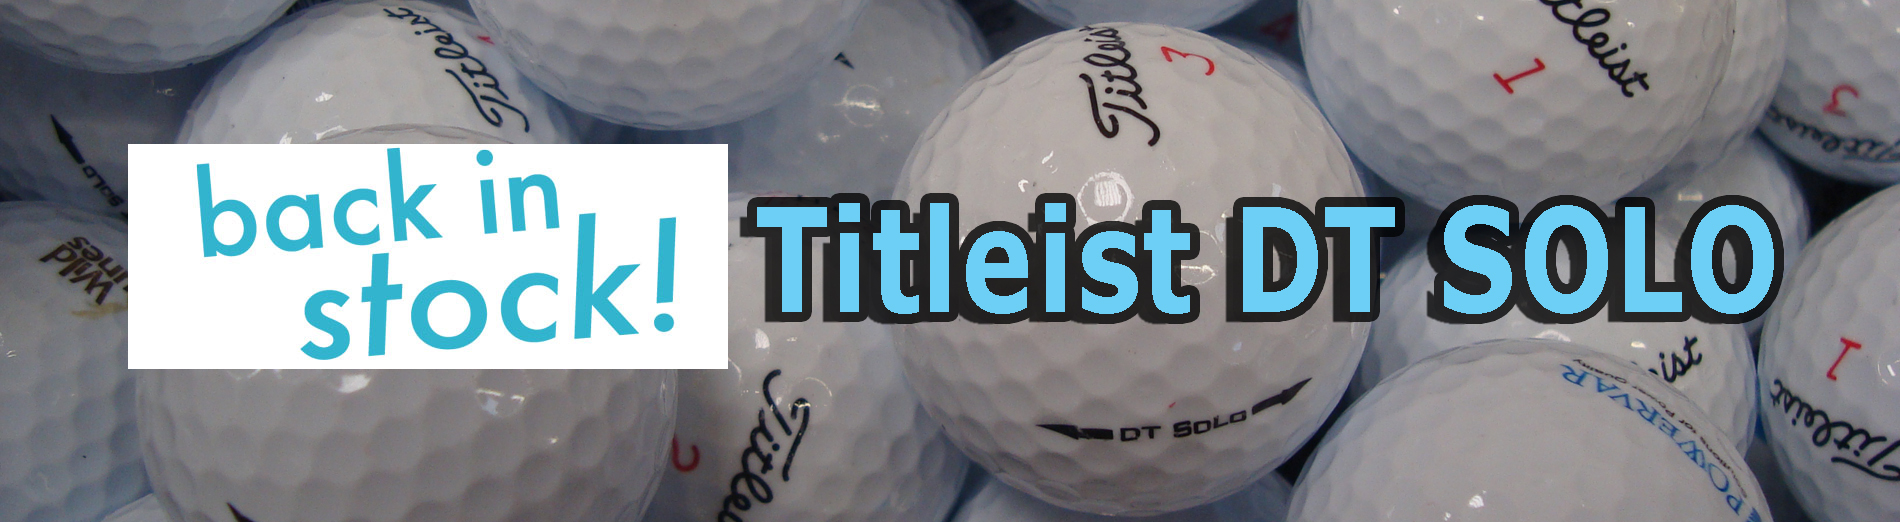 Titleist DT SOLO Back in Stock